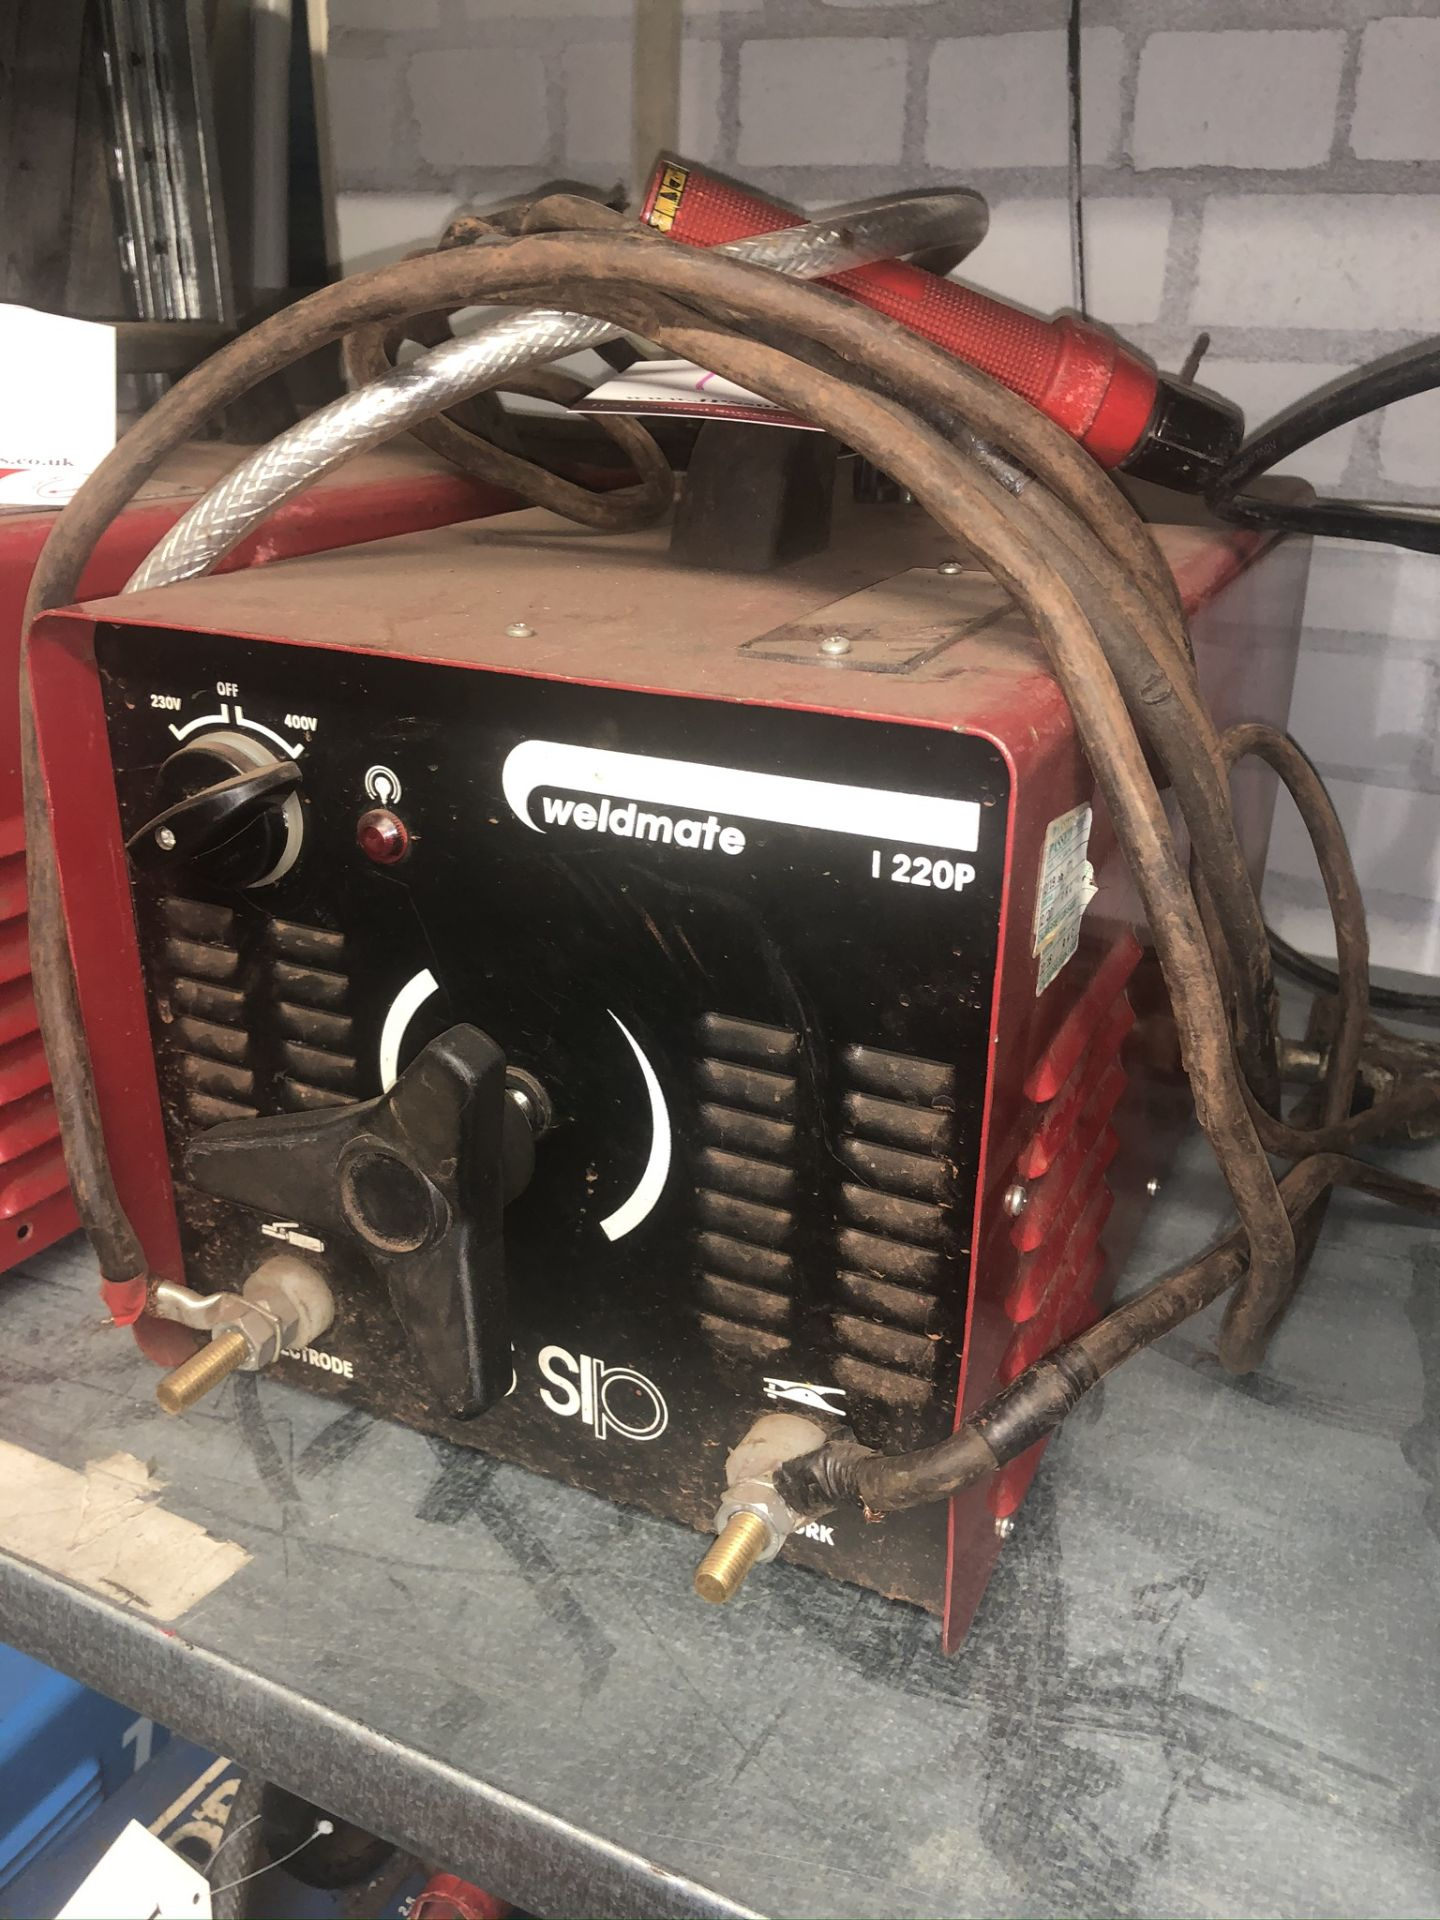 Lot 16 - SIP Weldmate 220p Inverter Welder